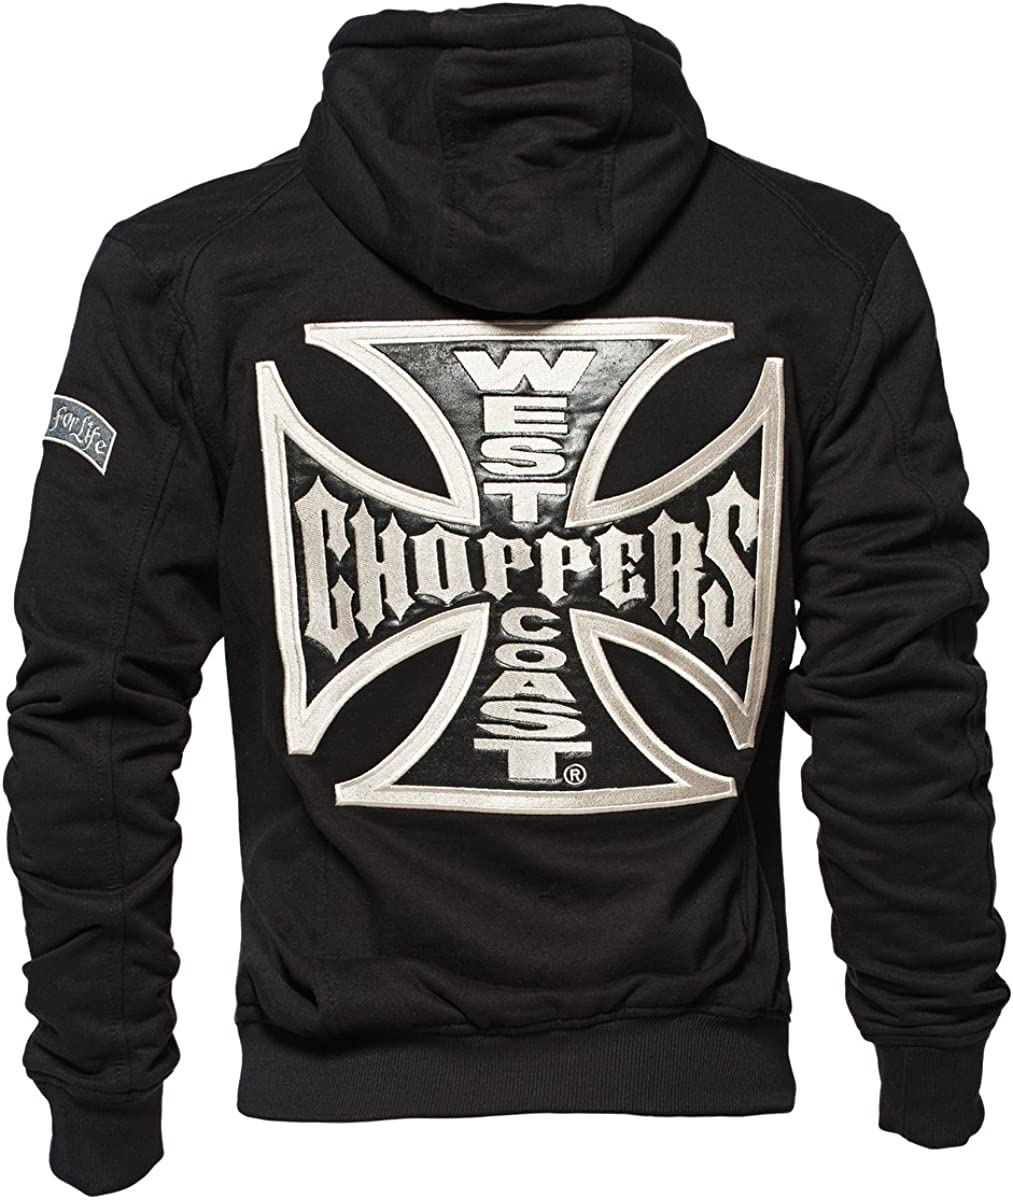 West Coast Choppers Zip Hoody Cross Panel